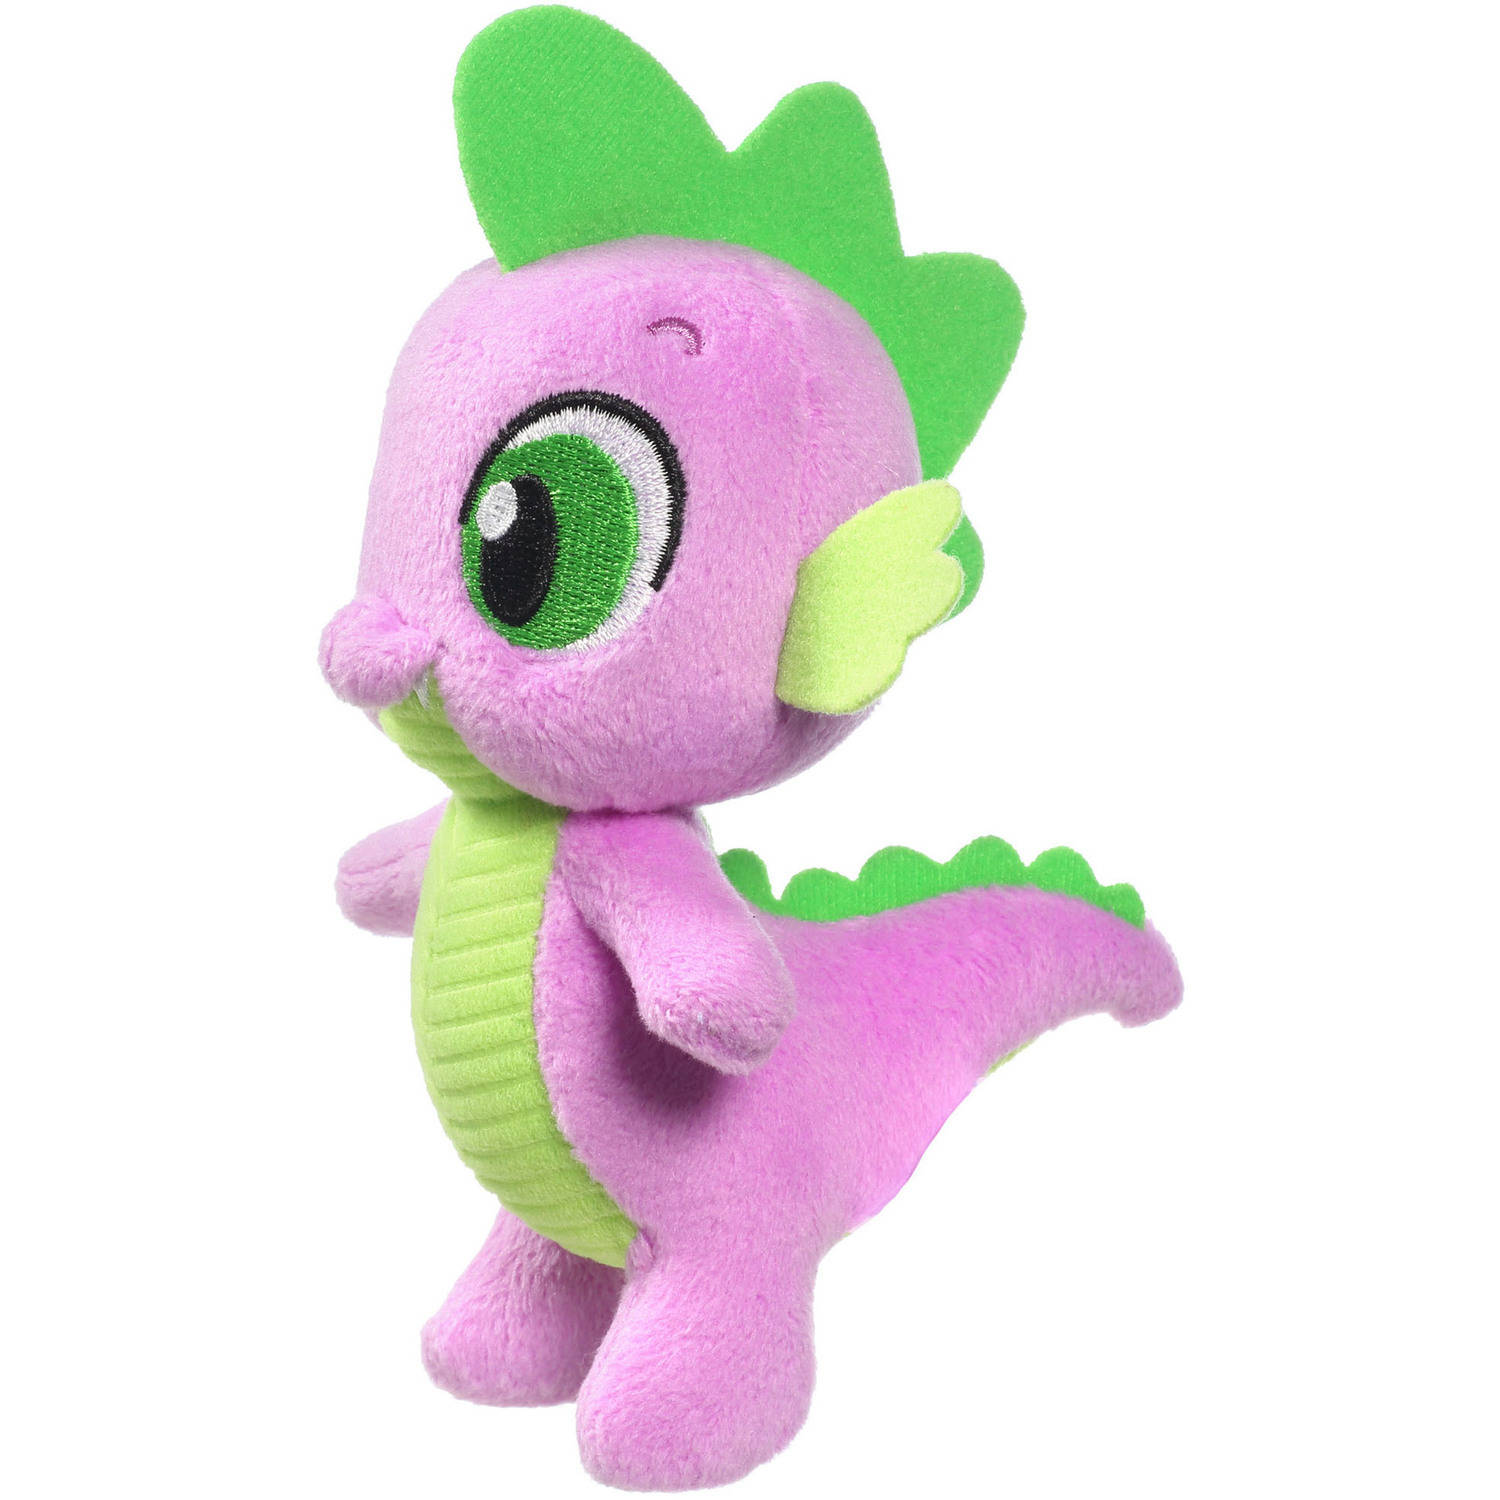 My Little Pony Friendship is Magic Spike the Dragon Small Plush by Hasbro